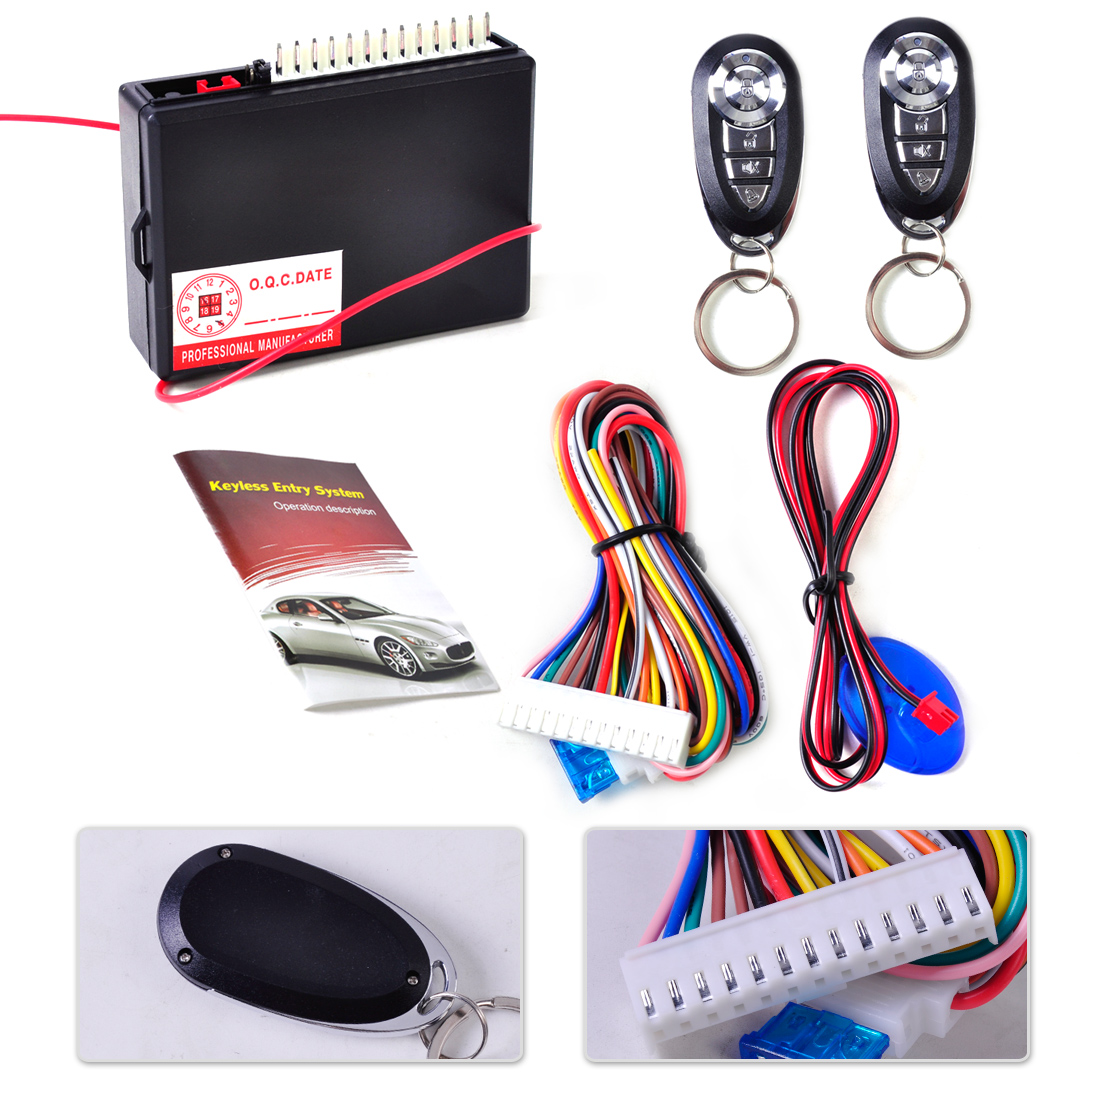 DWCX Car Vehicle Keyless Entry System Central Door Locking Control 2 Remote Controller f ...